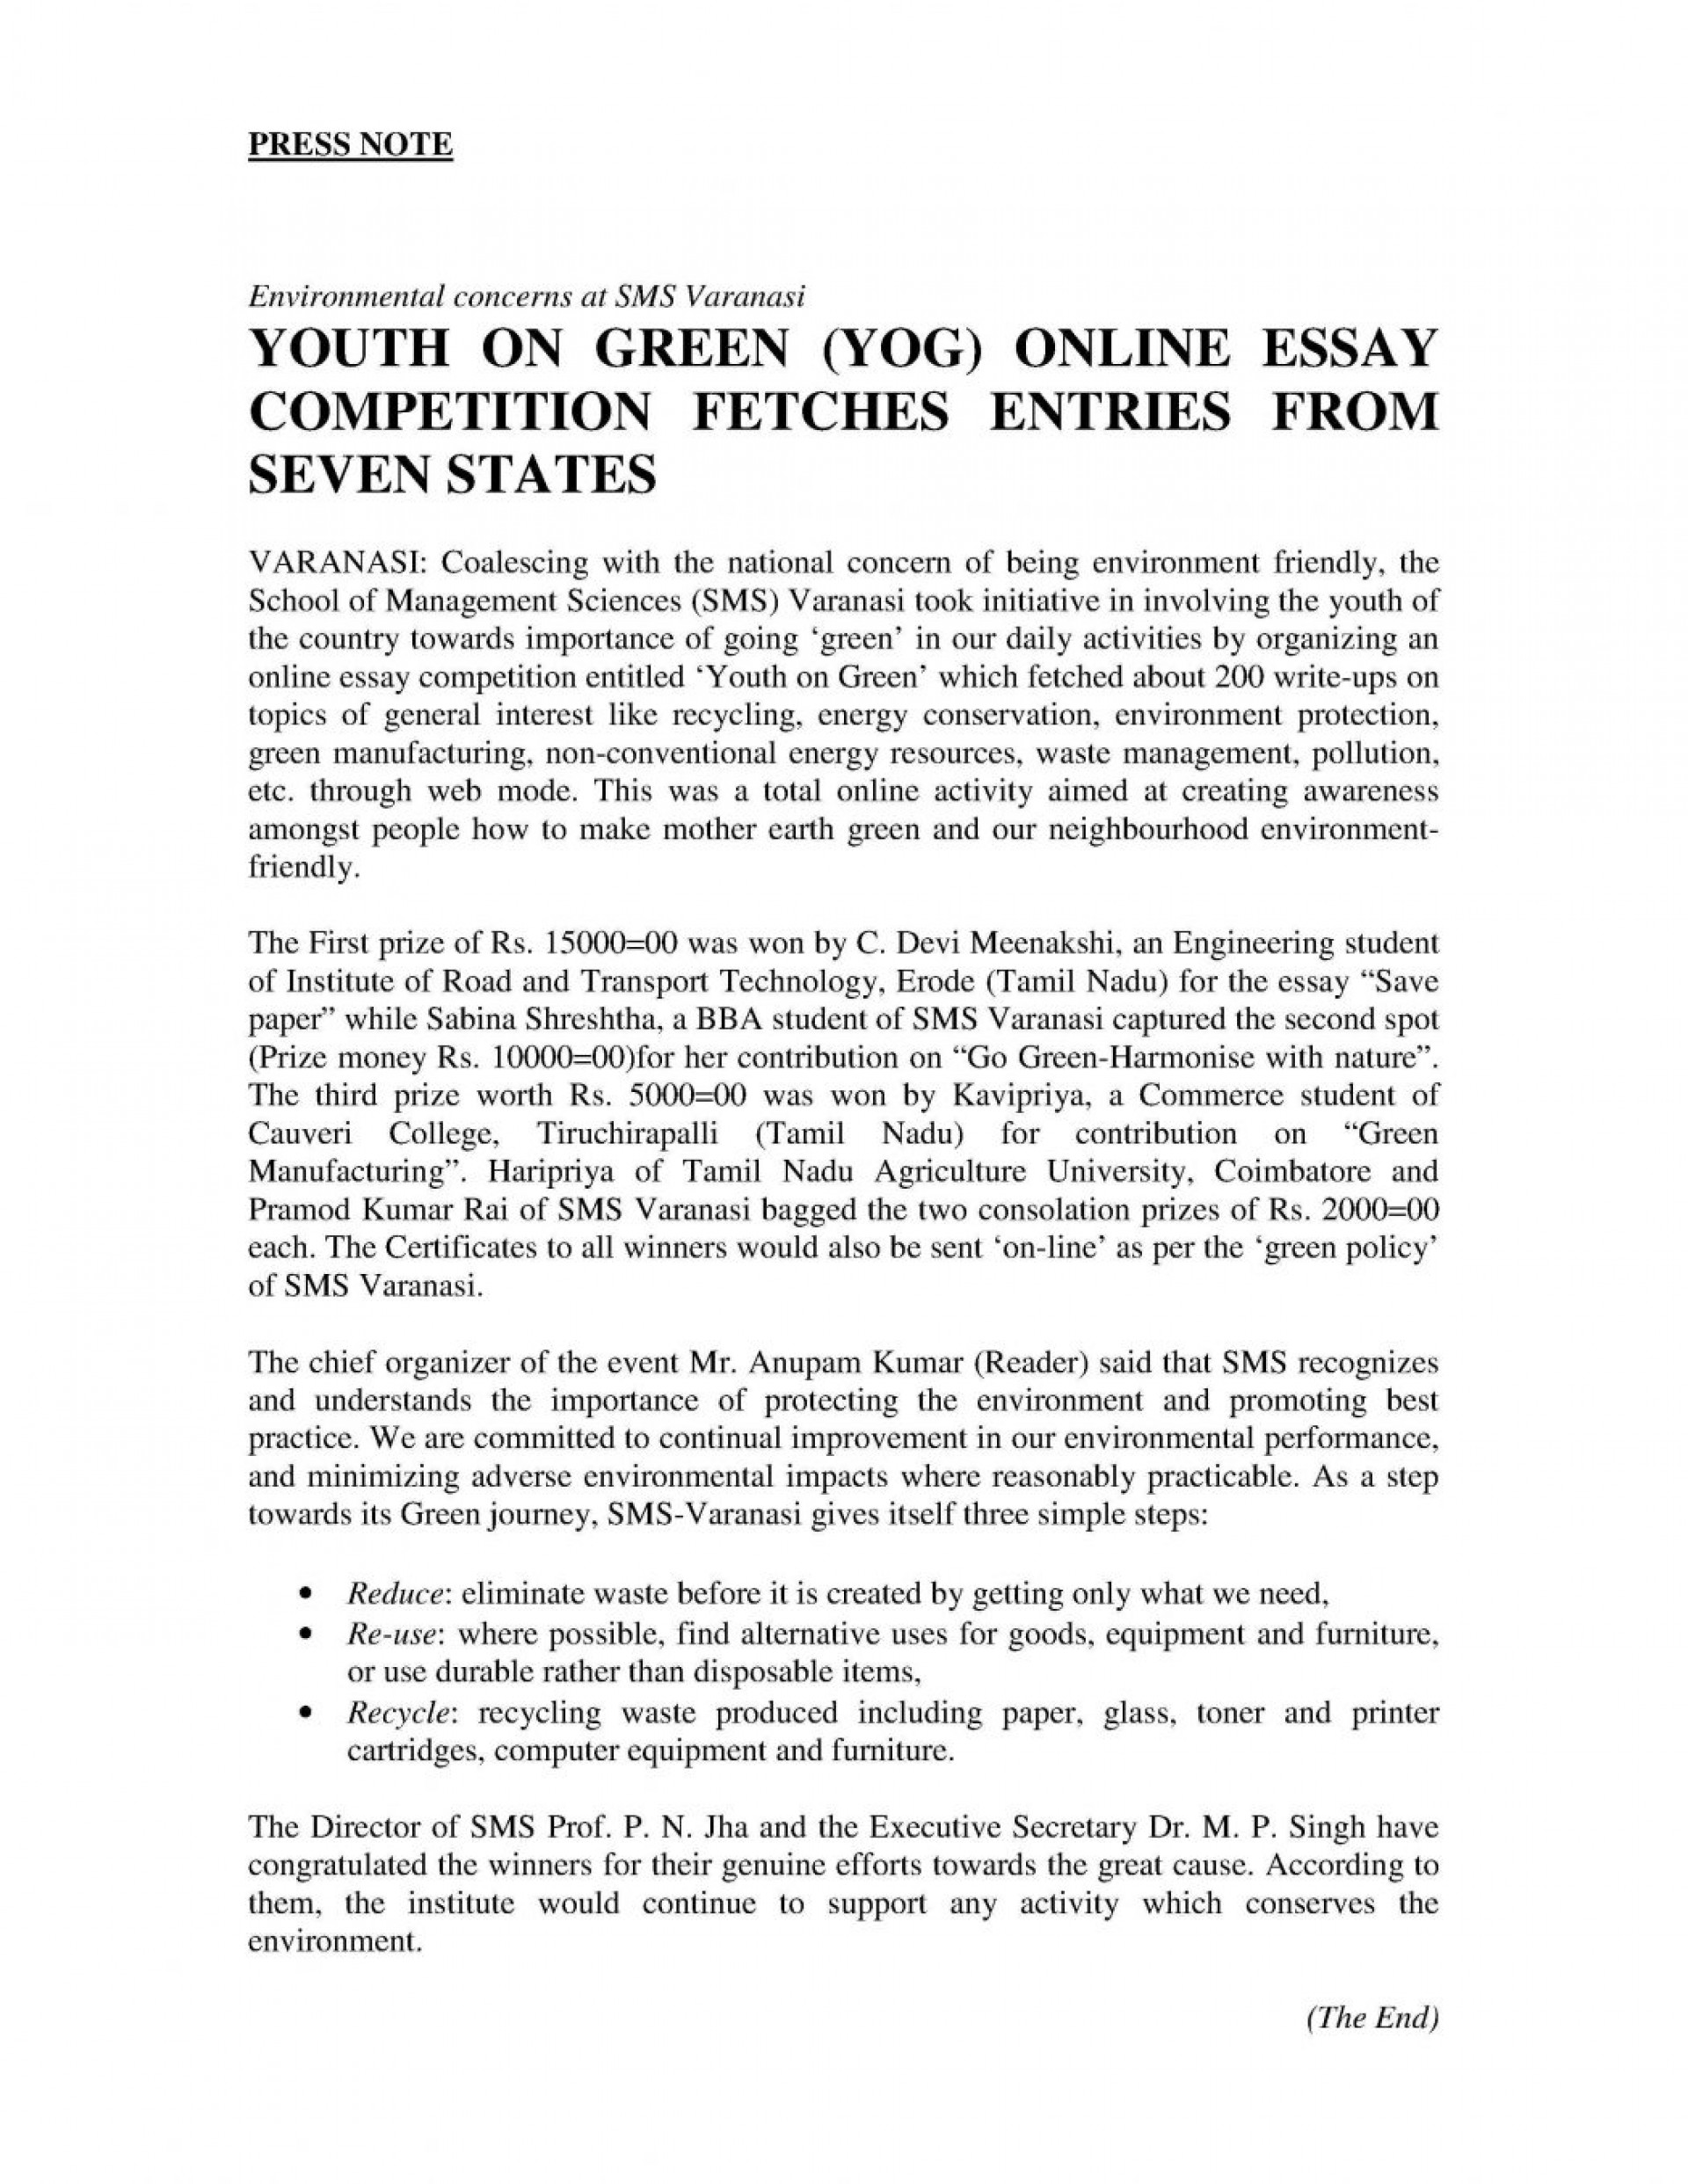 020 Best Essays For College Essay On Good Habits How Tot Application Online Yog Press Re About Yourself Examples Your Background Failure Prompt Off Hook 1048x1356 Example Amazing To Start An With A Do U Book Autobiography 1920